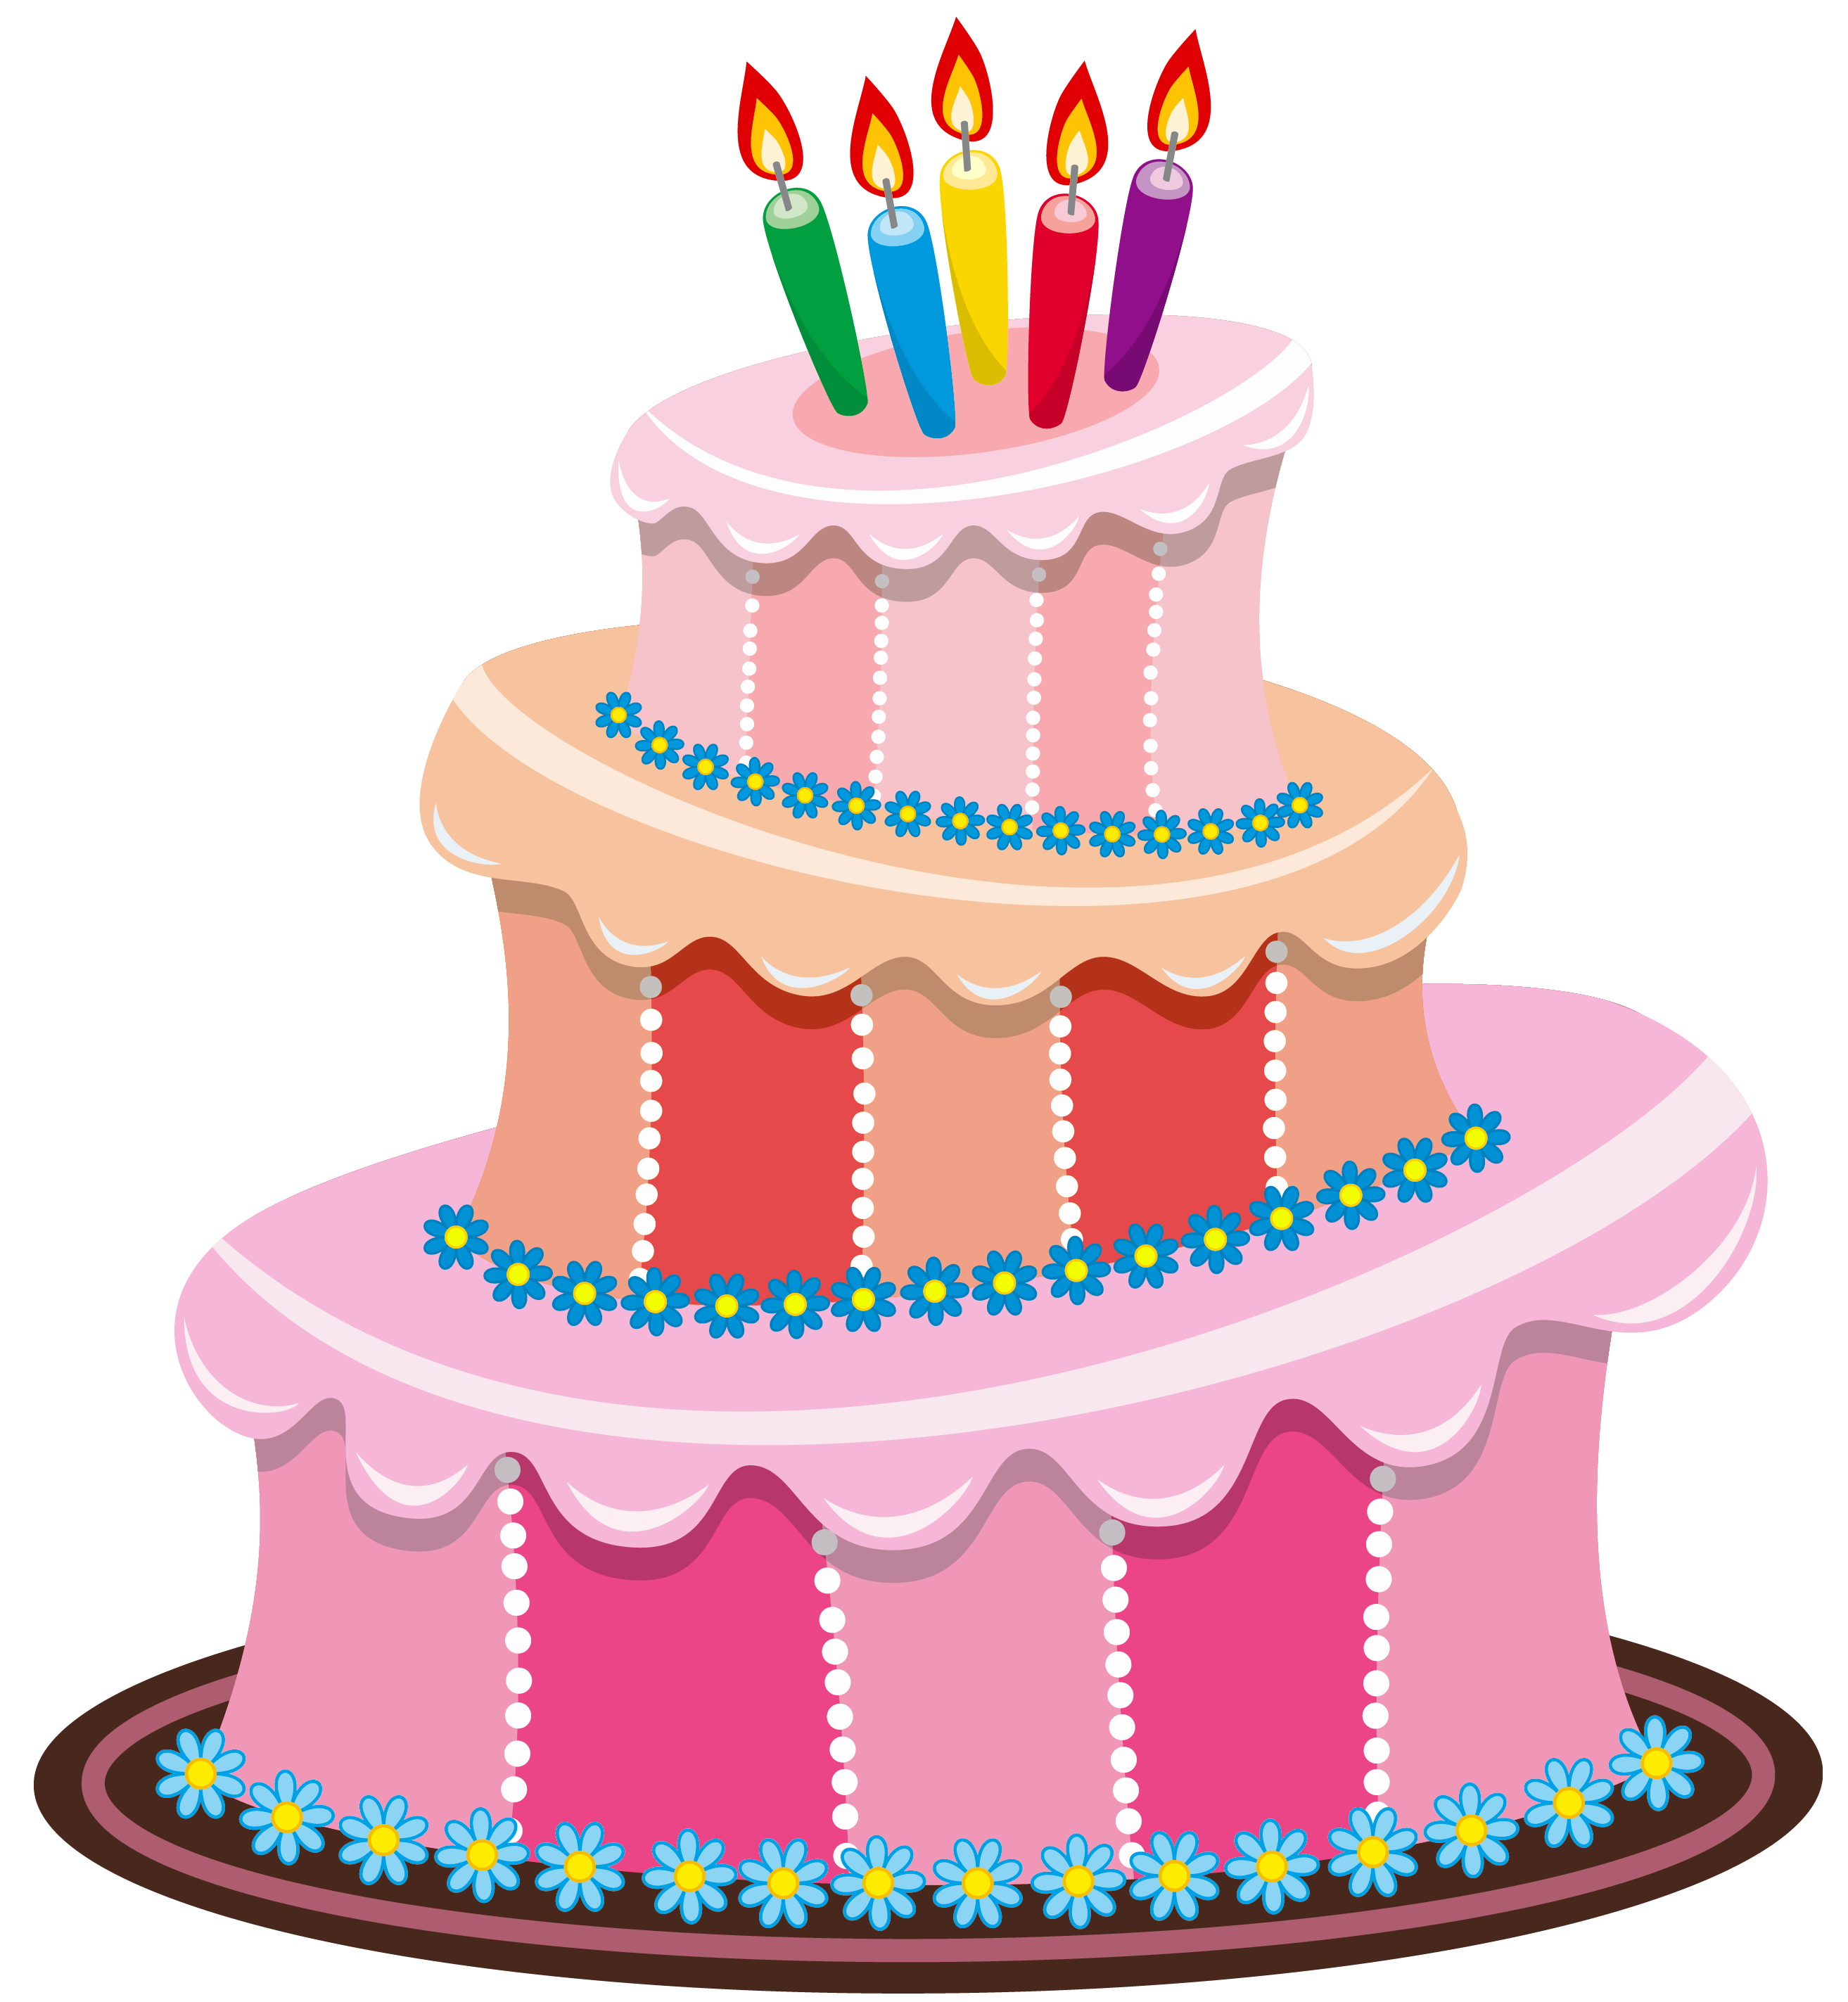 Image birthday cake clipart png black and white stock Pink Birthday Cake PNG Clipart png black and white stock